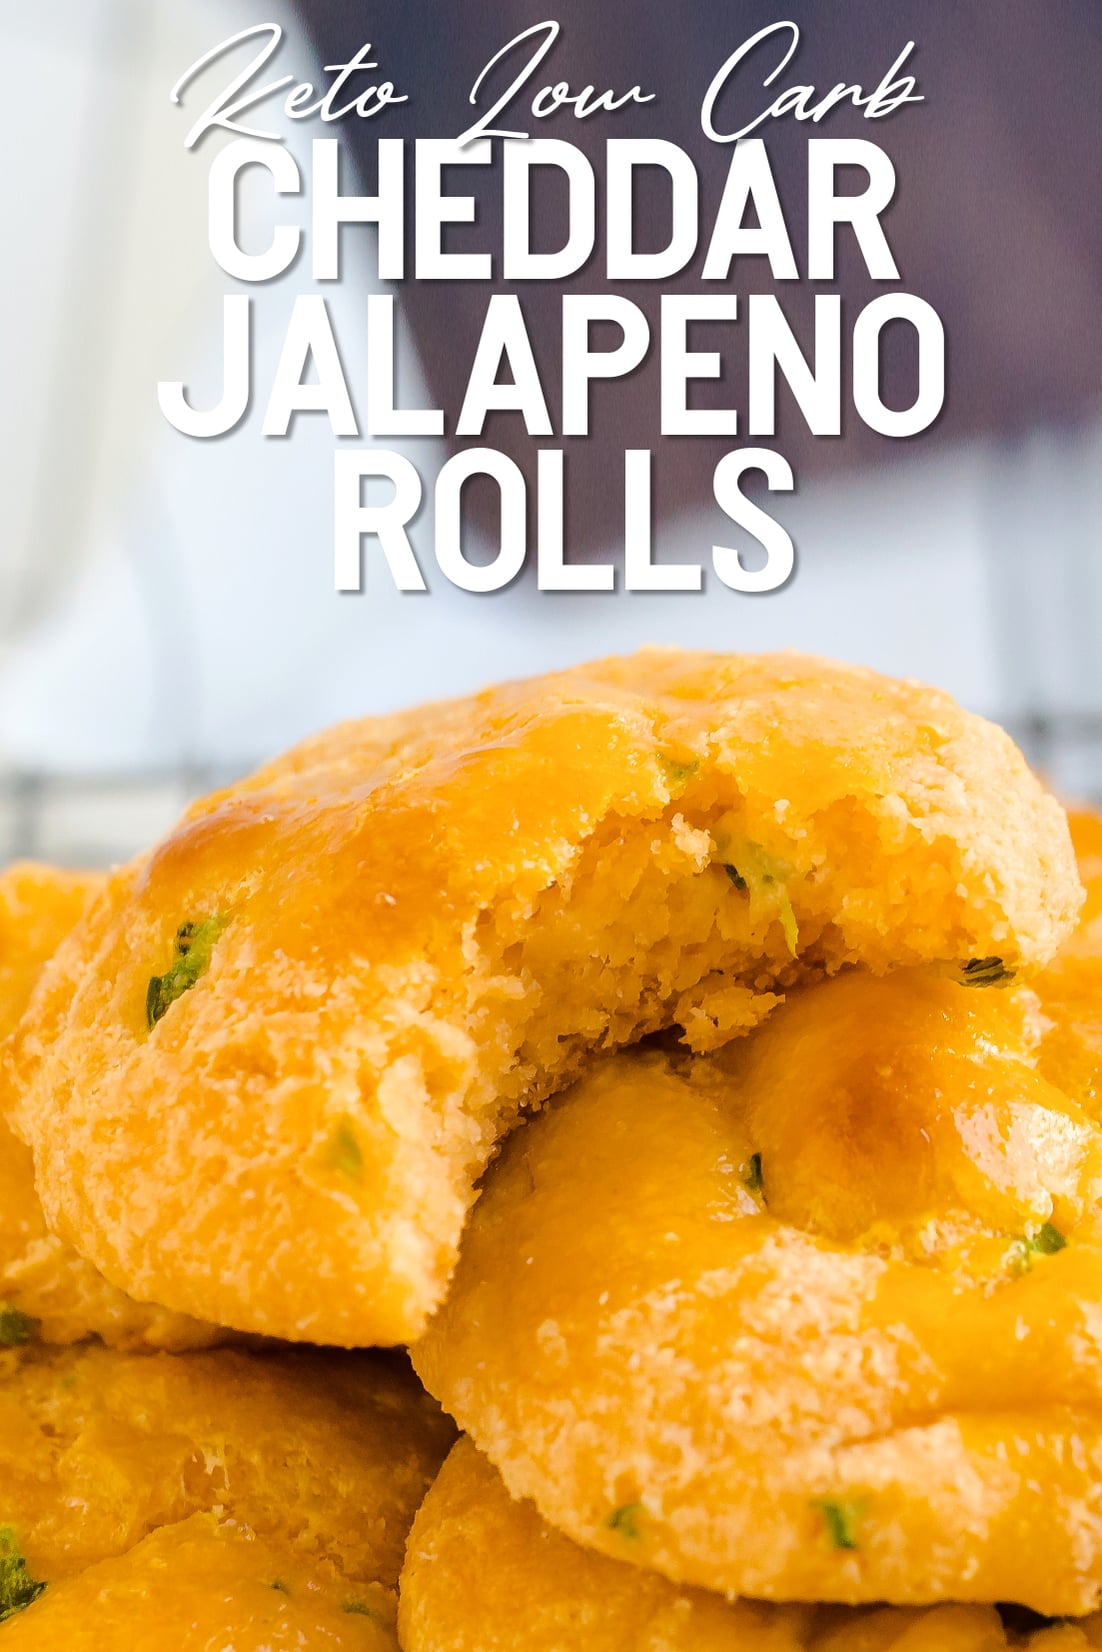 Keto Cheddar Jalapeno Rolls stackeed on top of each other with a bite taken